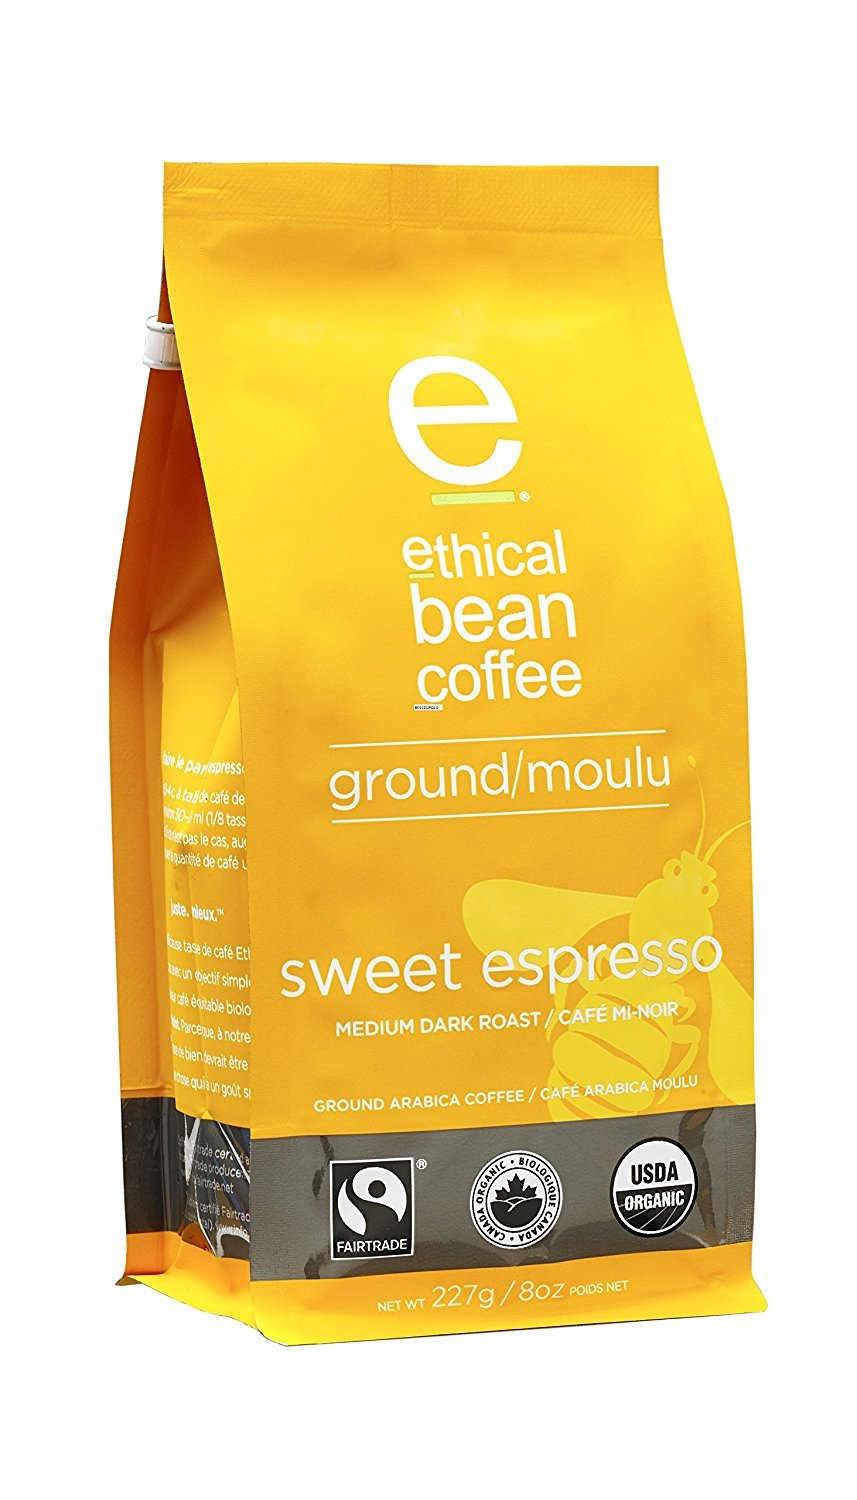 Amazon.com : Ethical Bean Coffee - Sweet Espresso Ground Coffee 8 oz (Pack of 6) : Grocery & Gourmet Food